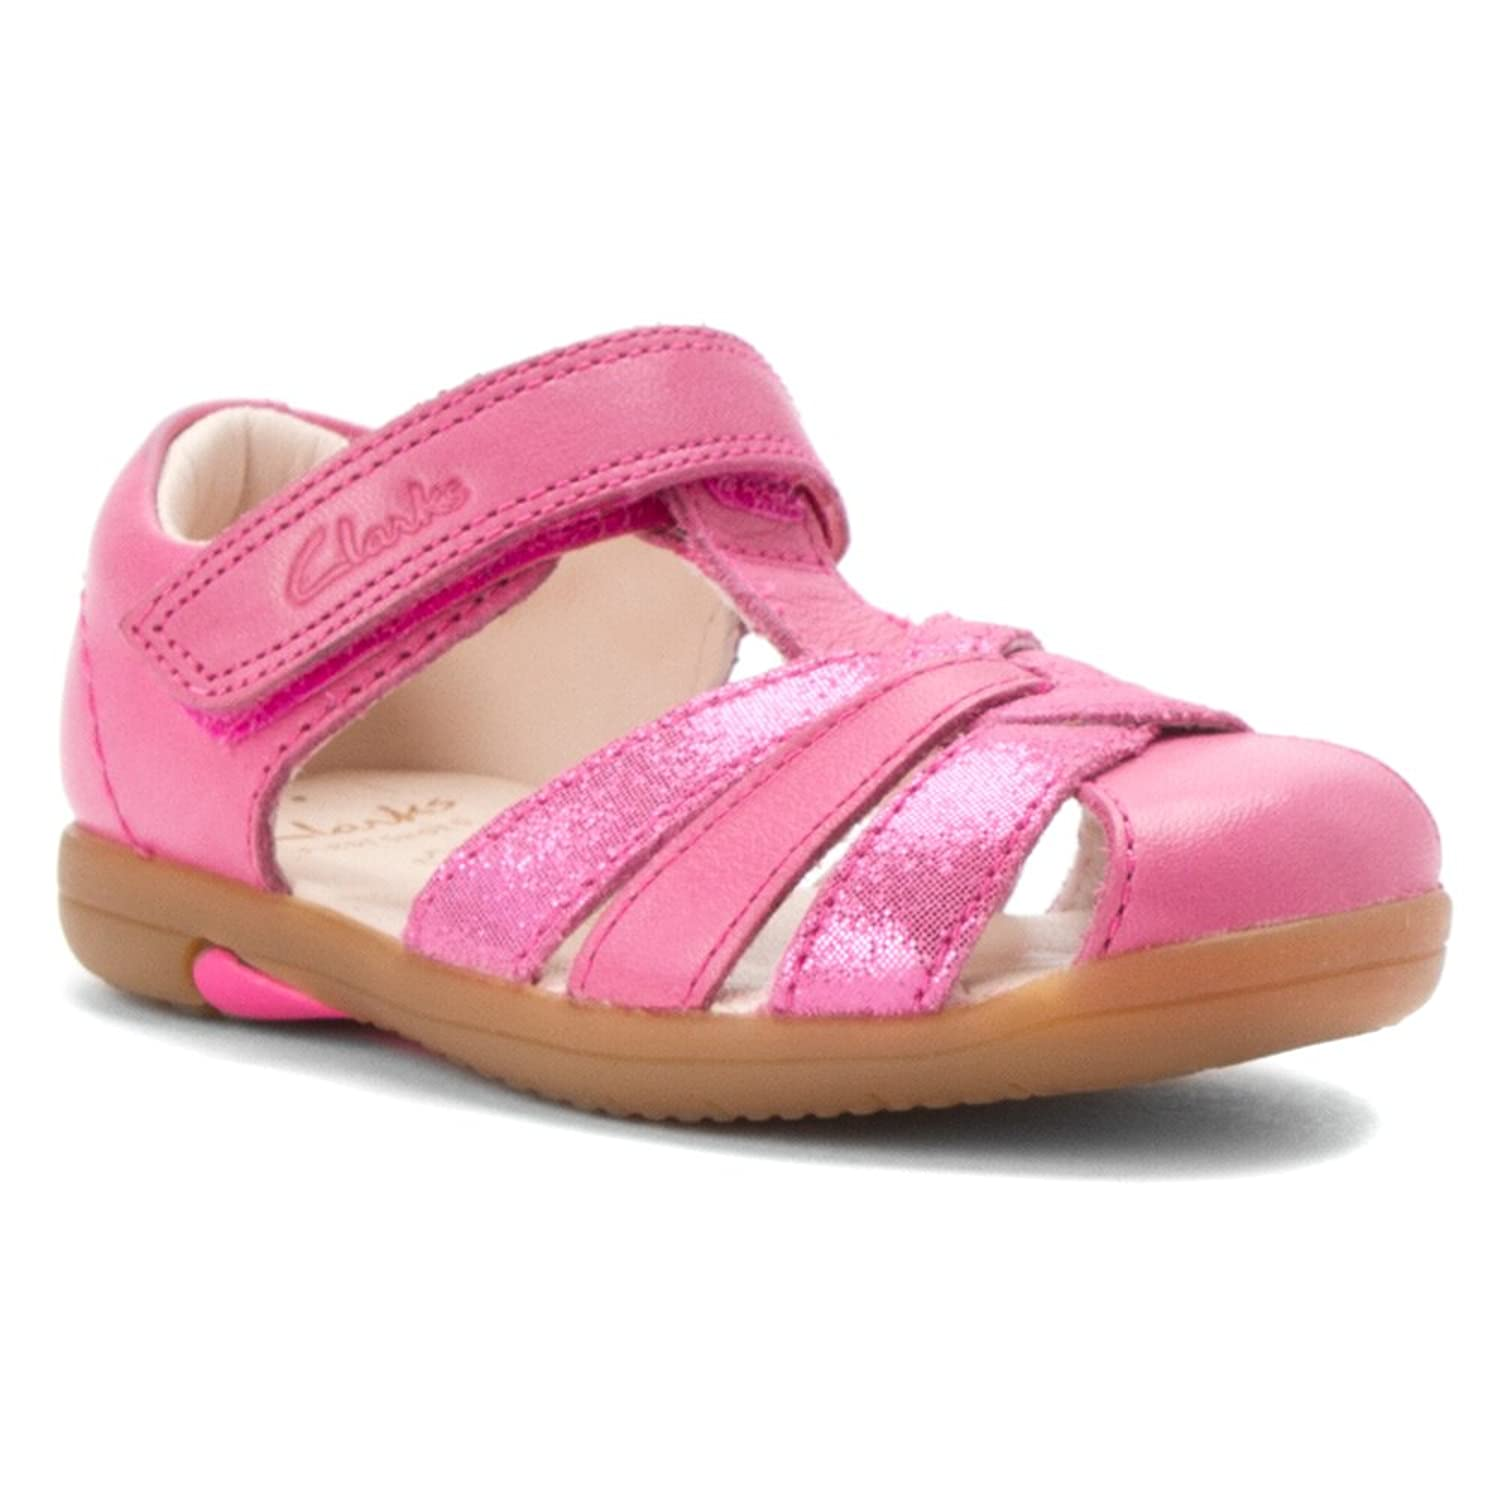 clarks baby sandals size 3